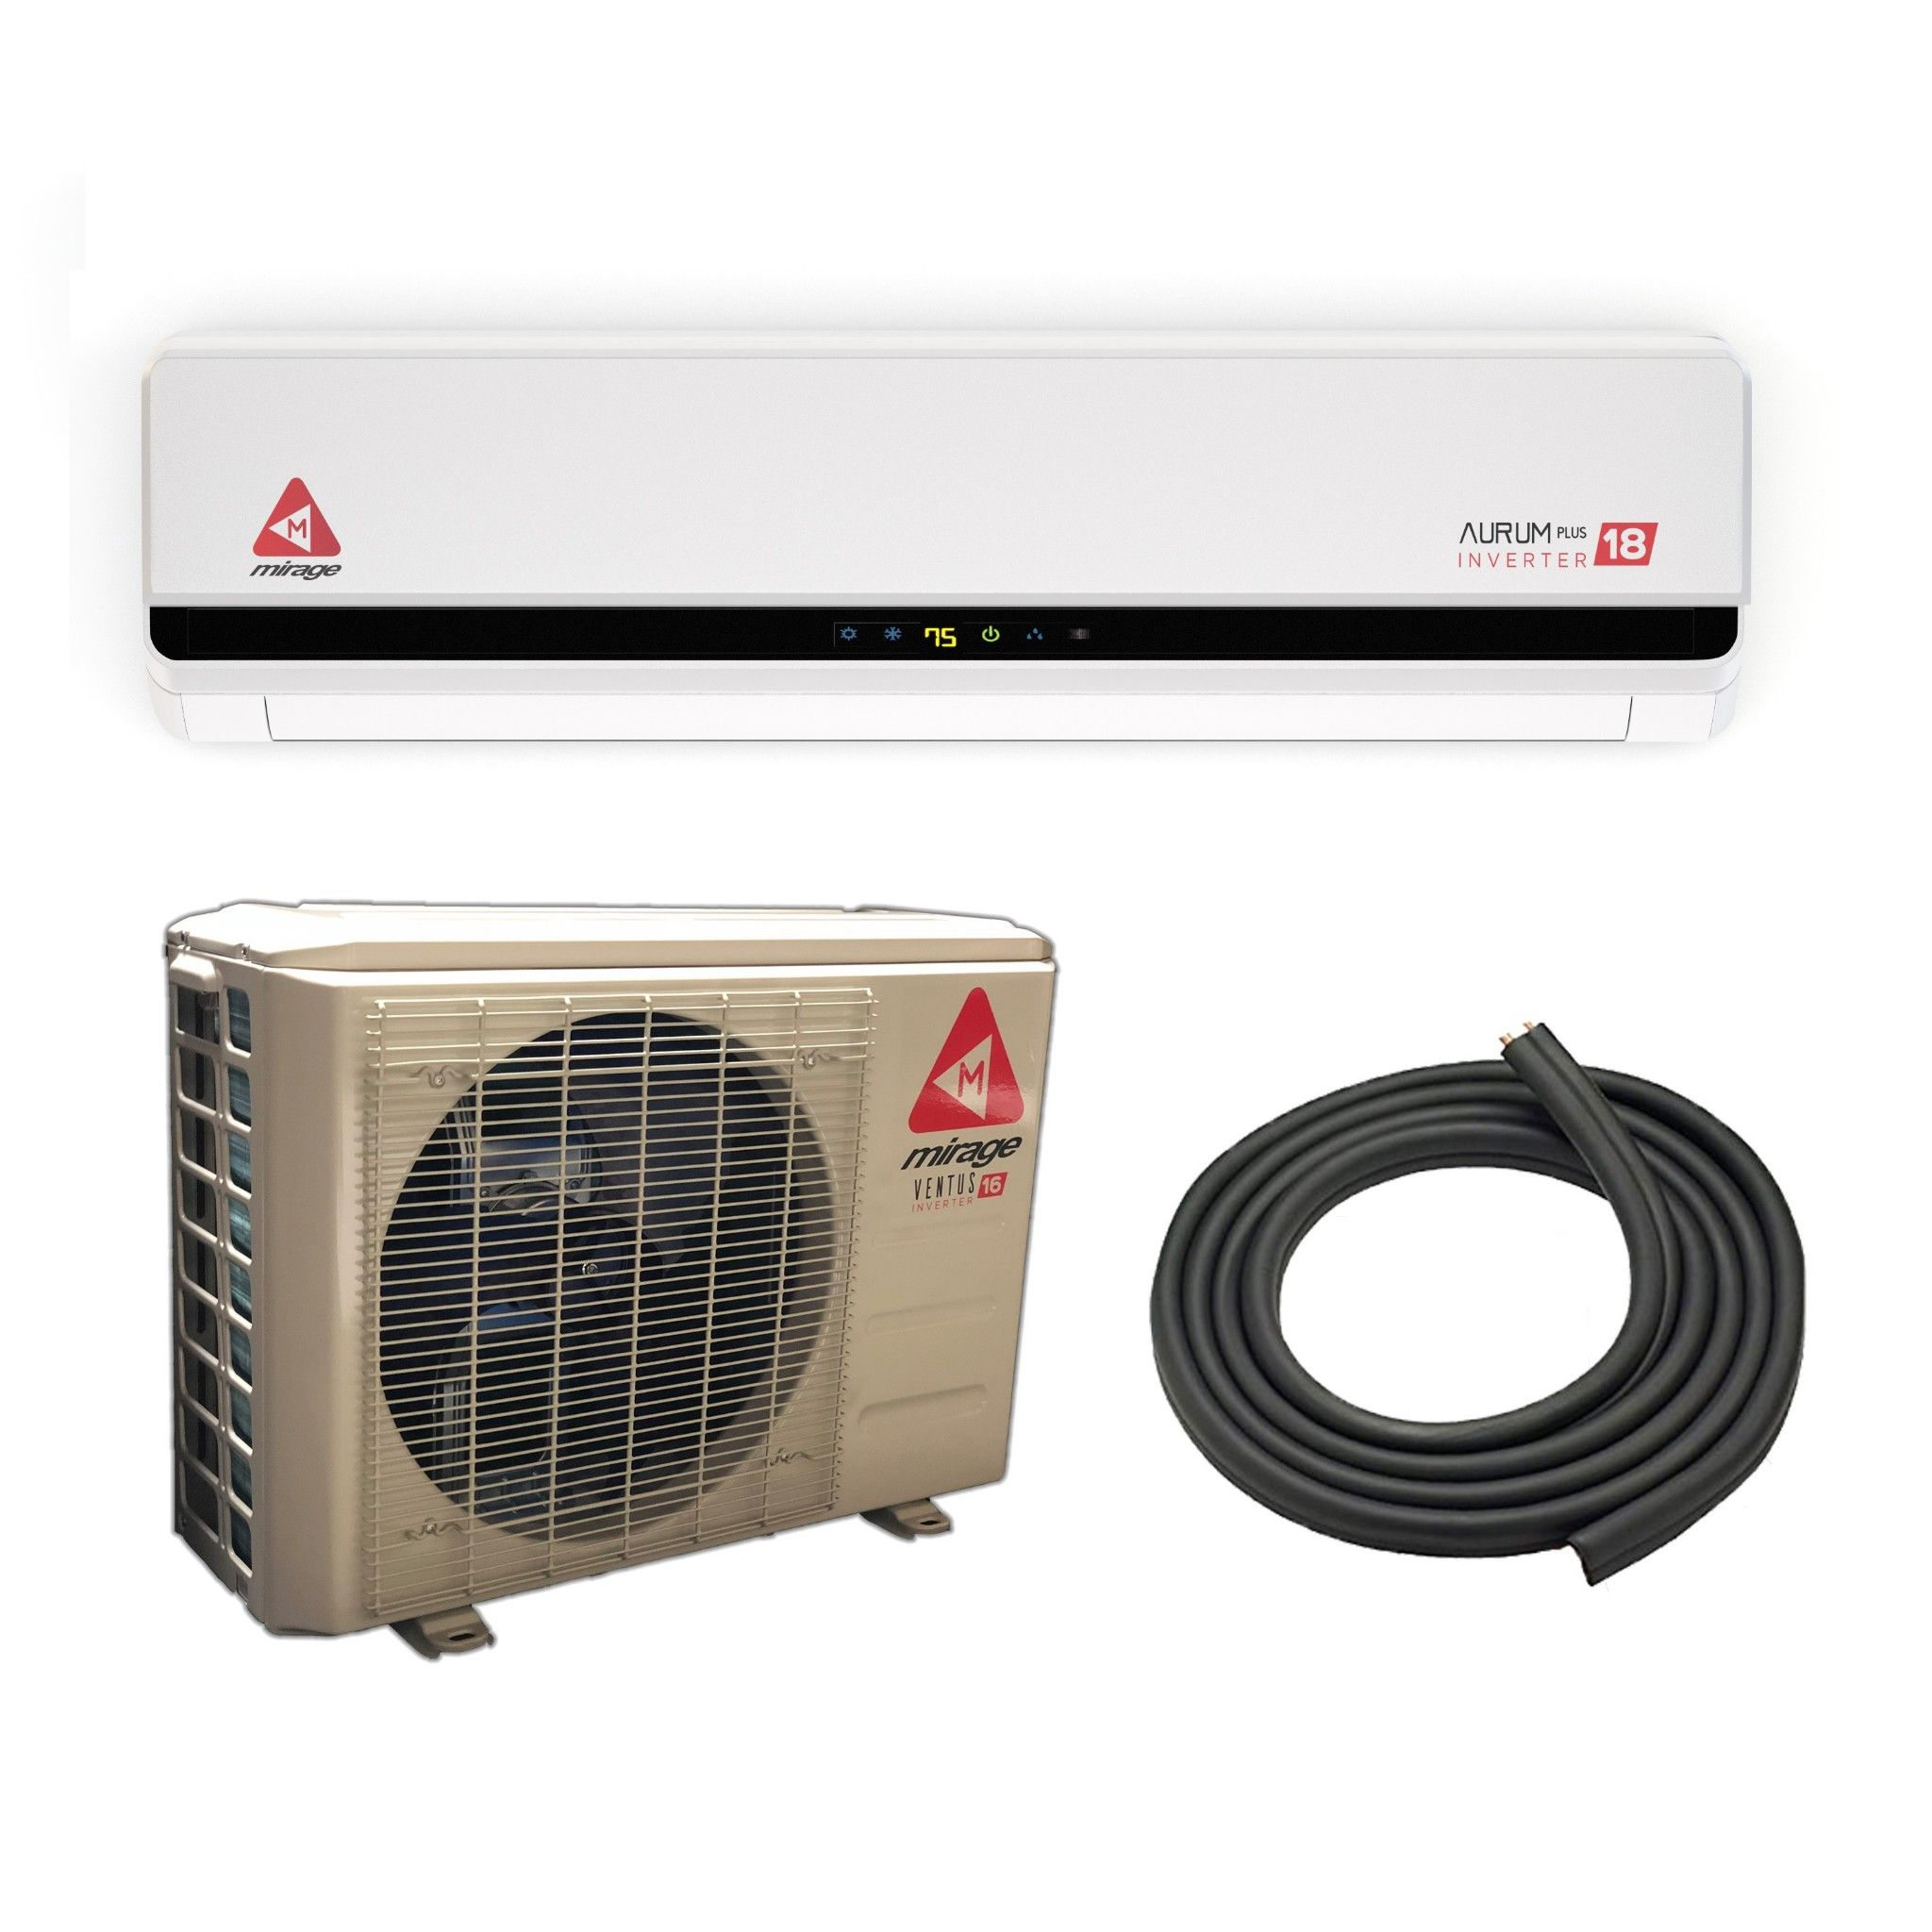 Mirage 22 Seer 220v Inverter In 2020 Heat Pump System Heat Pump Ductless Mini Split